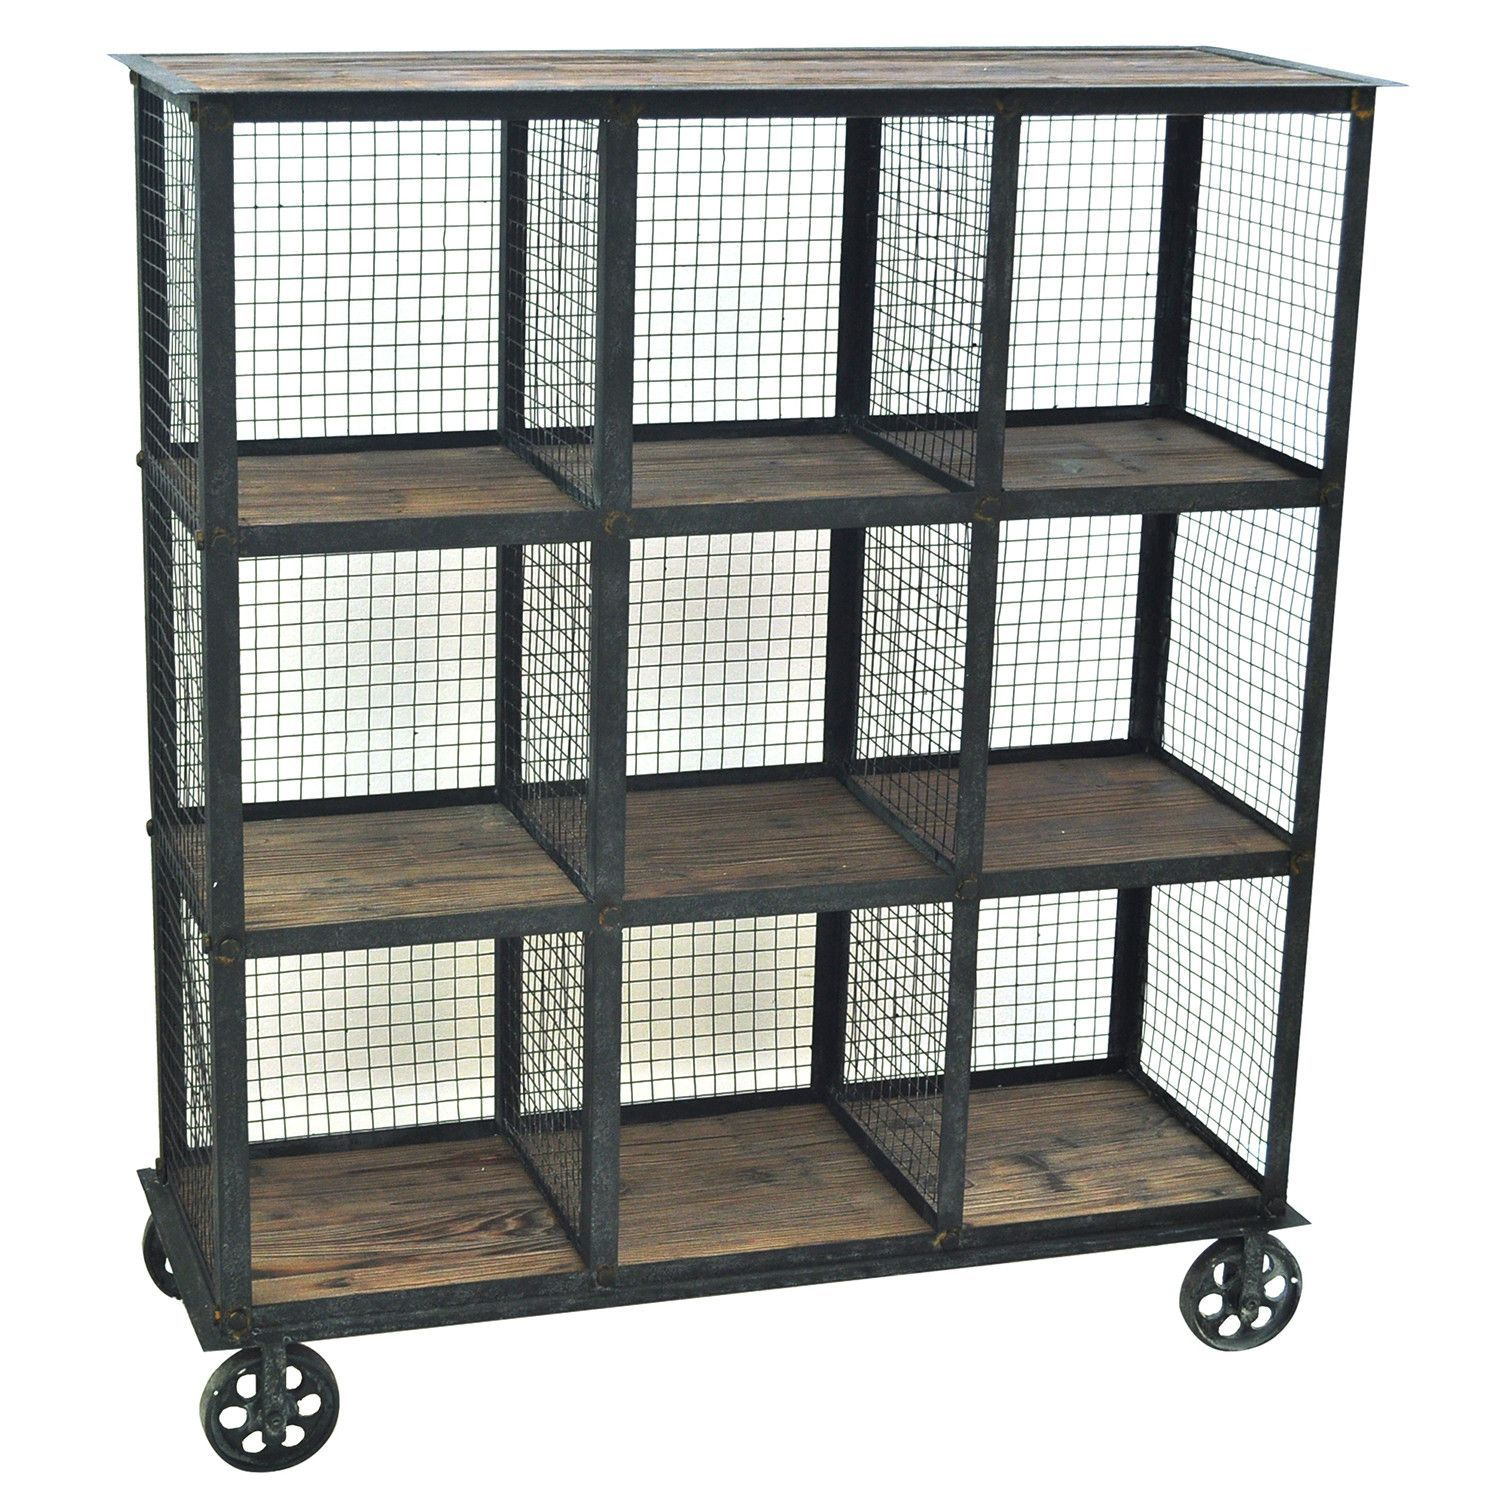 Perfect For A Library This Industrial Metal And Wood Bookcase Has Nine Square Compar Rustic Furniture Stores Industrial Bookcases Vintage Industrial Furniture